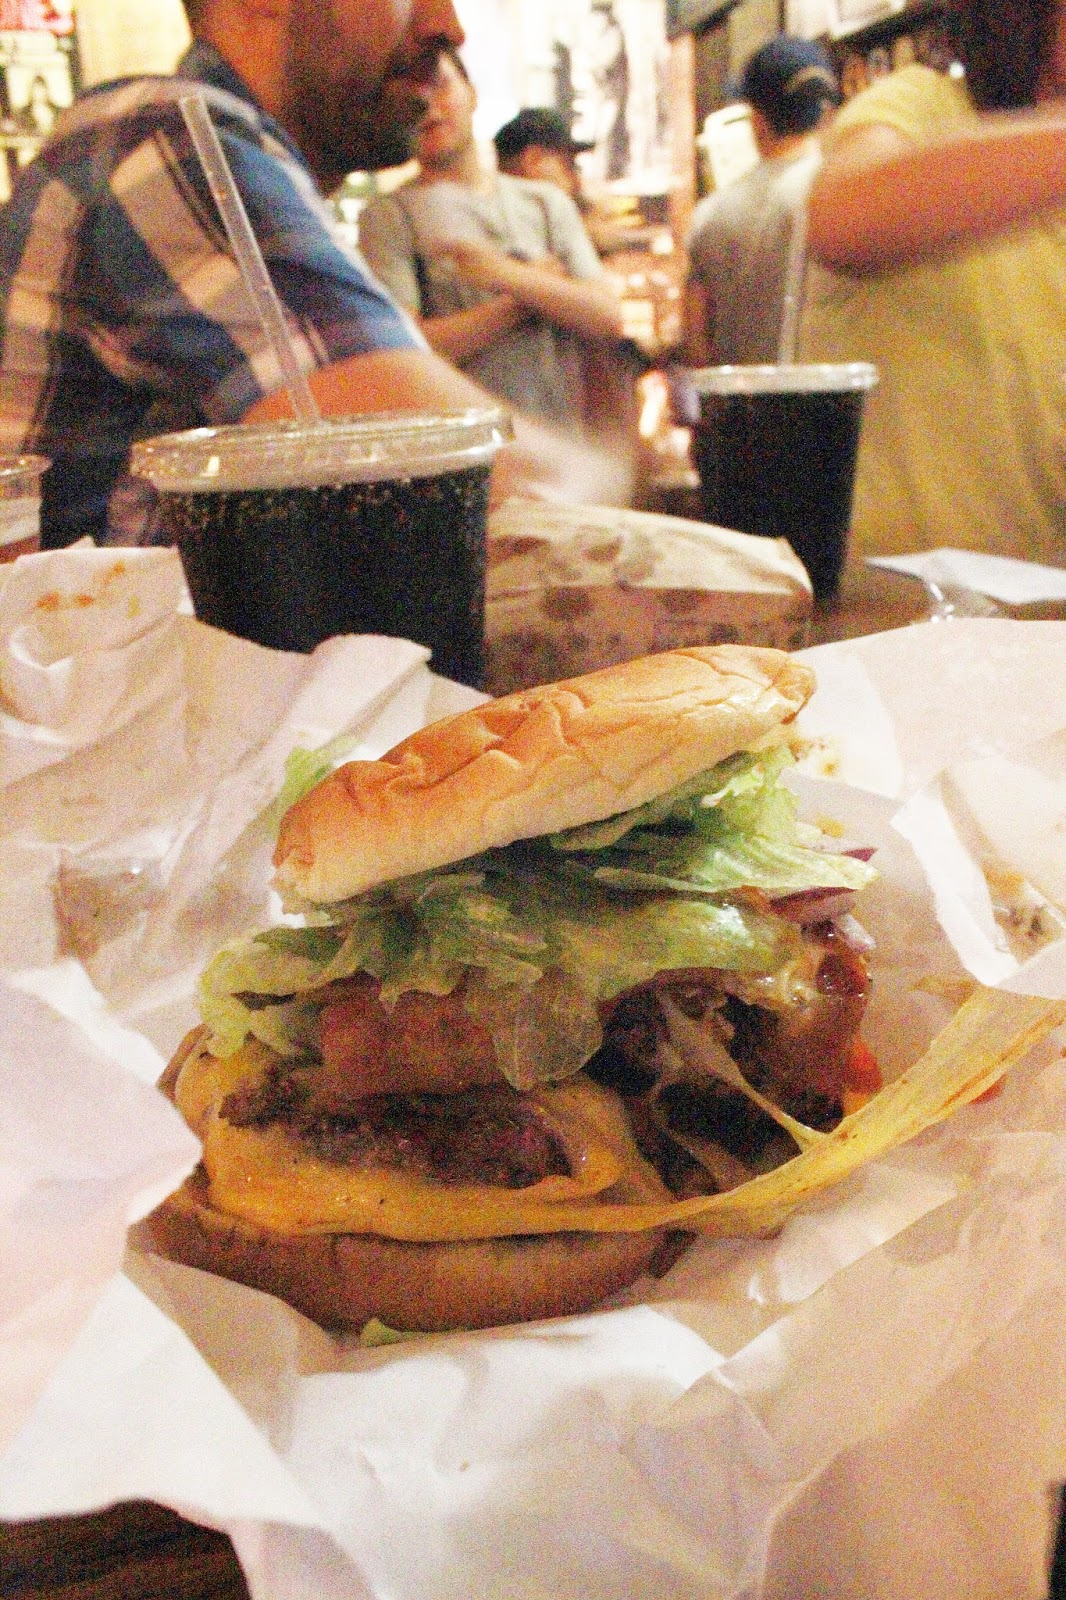 burger joint hotel parker new york mejor hamburguesa restaurante